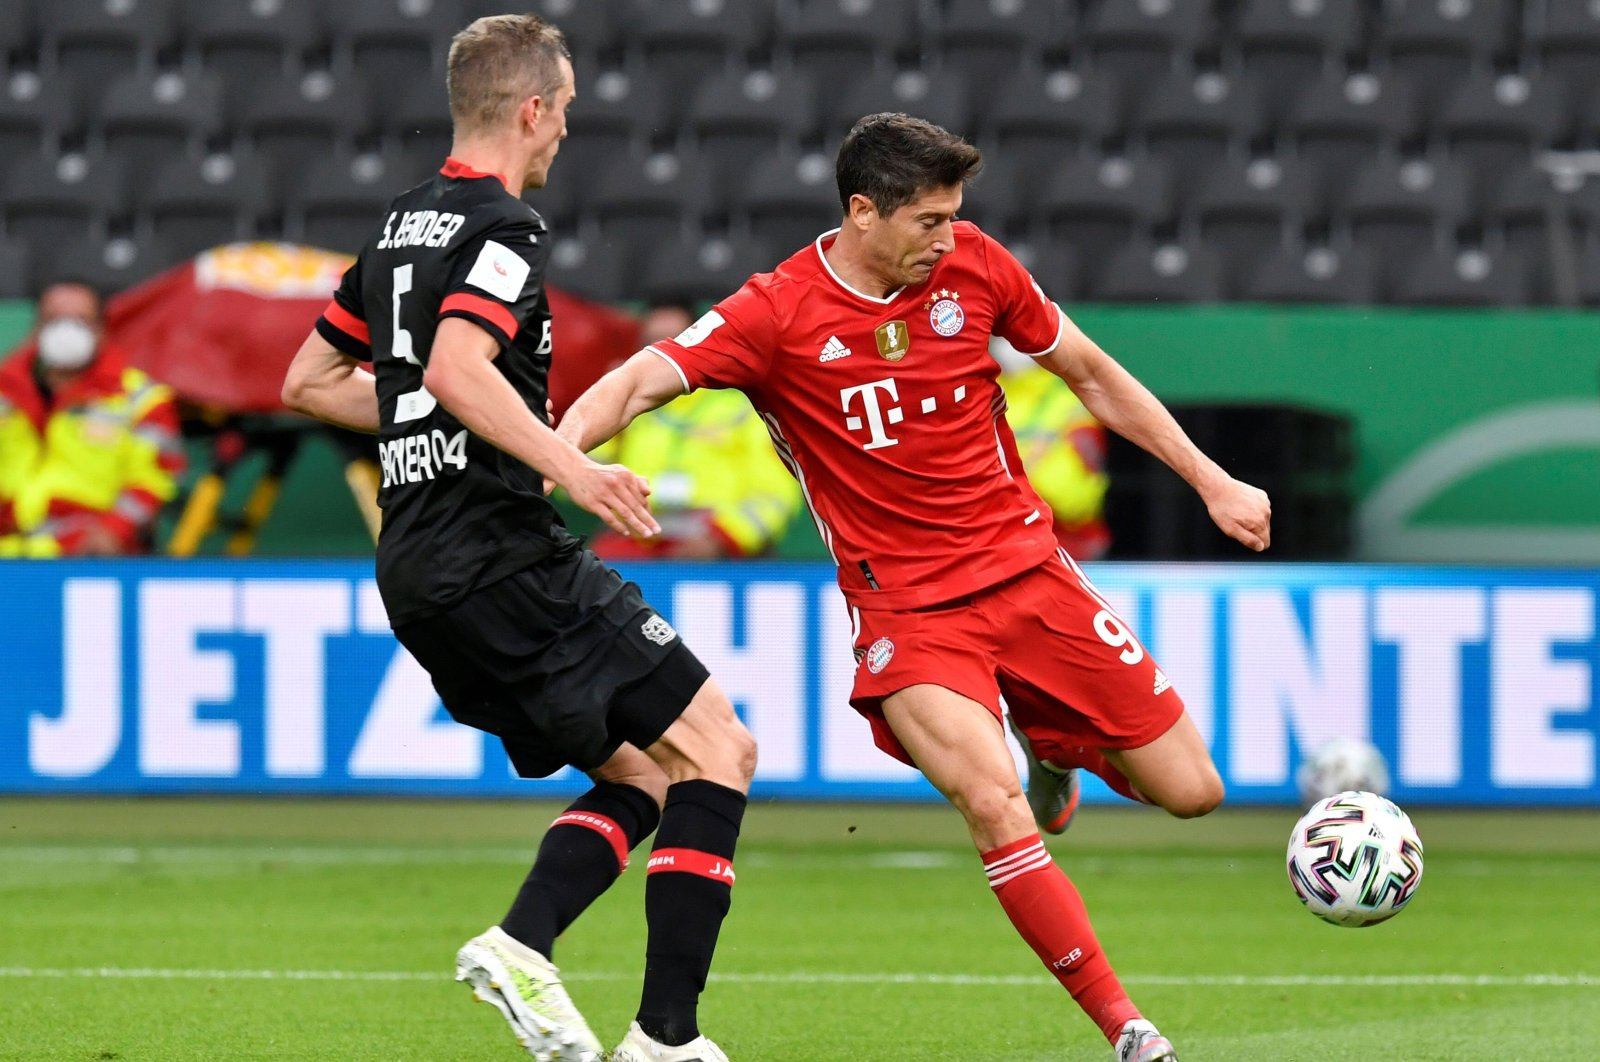 Bayern Munich's Robert Lewandowski (R) in action with Bayer Leverkusen's Sven Bender during a German Cup match at the Olympiastadion stadium in Berlin, Germany, July 4, 2020. (AP Photo)